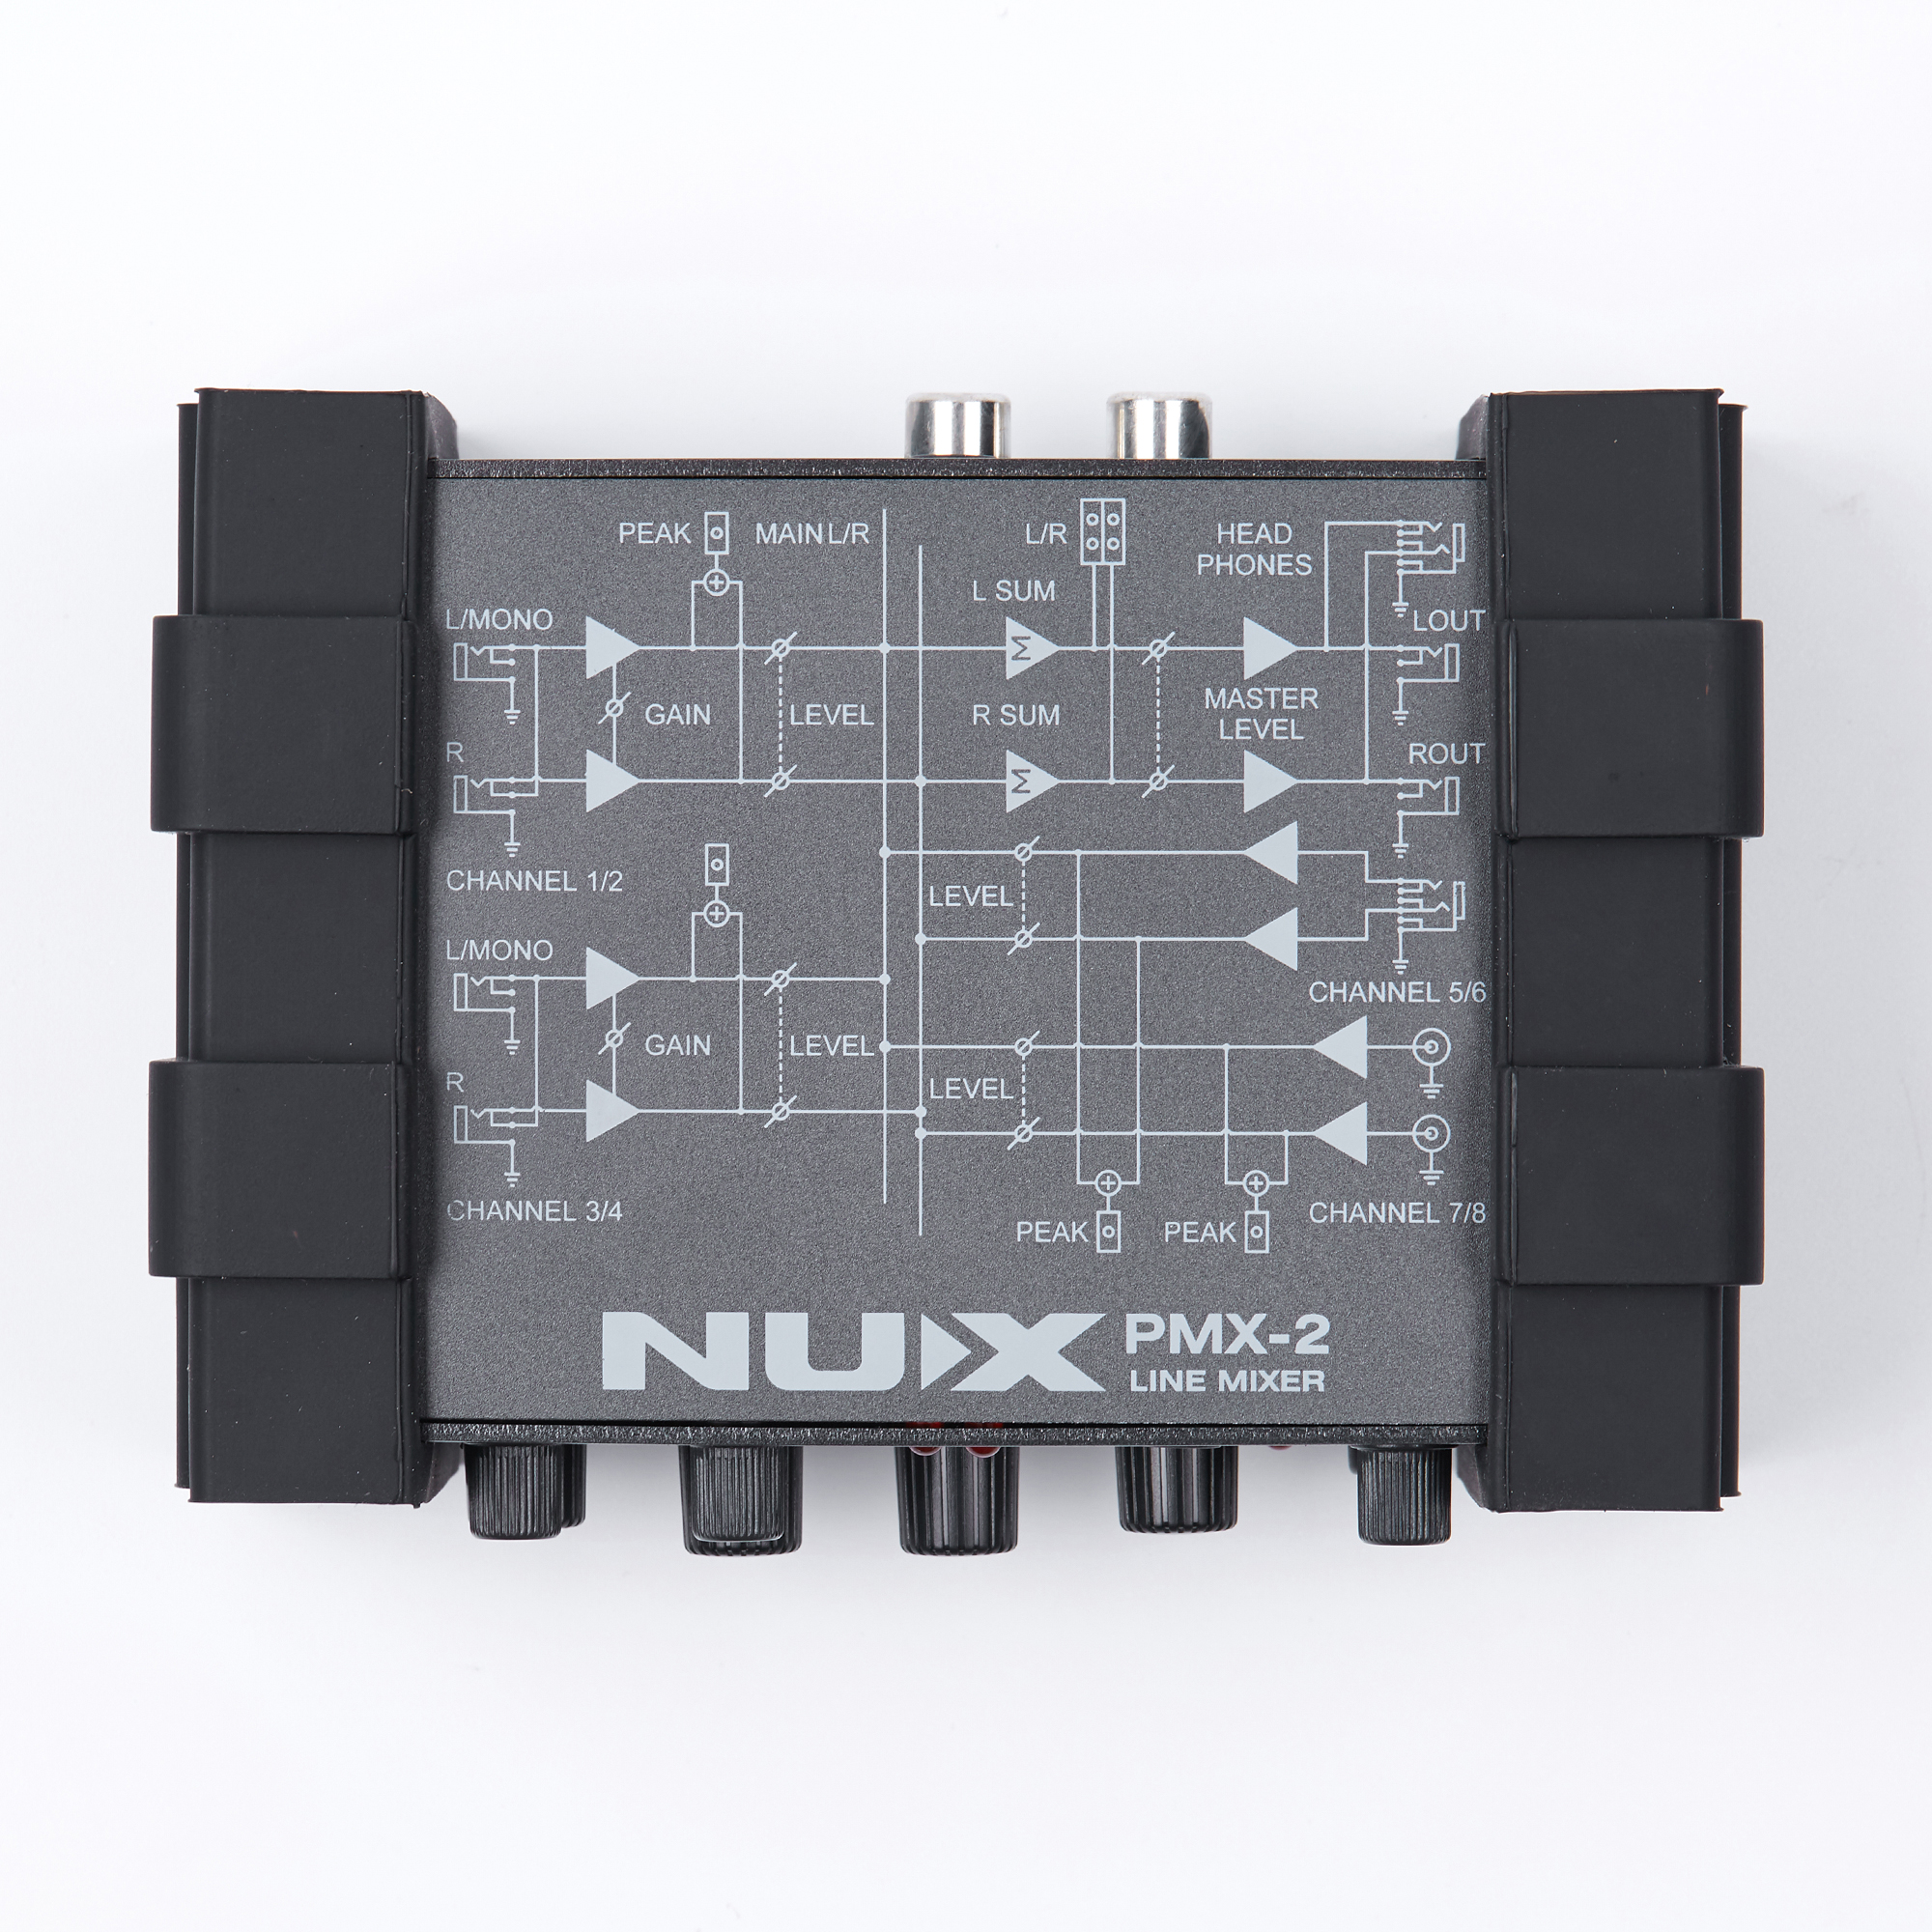 Gain Control 8 Inputs and 2 Outputs NUX PMX-2 Multi-Channel Mini Mixer 30 Musical Instruments Accessories for Guitar Bass Player набор разделочных досок 3 предмета gipfel bright 3249